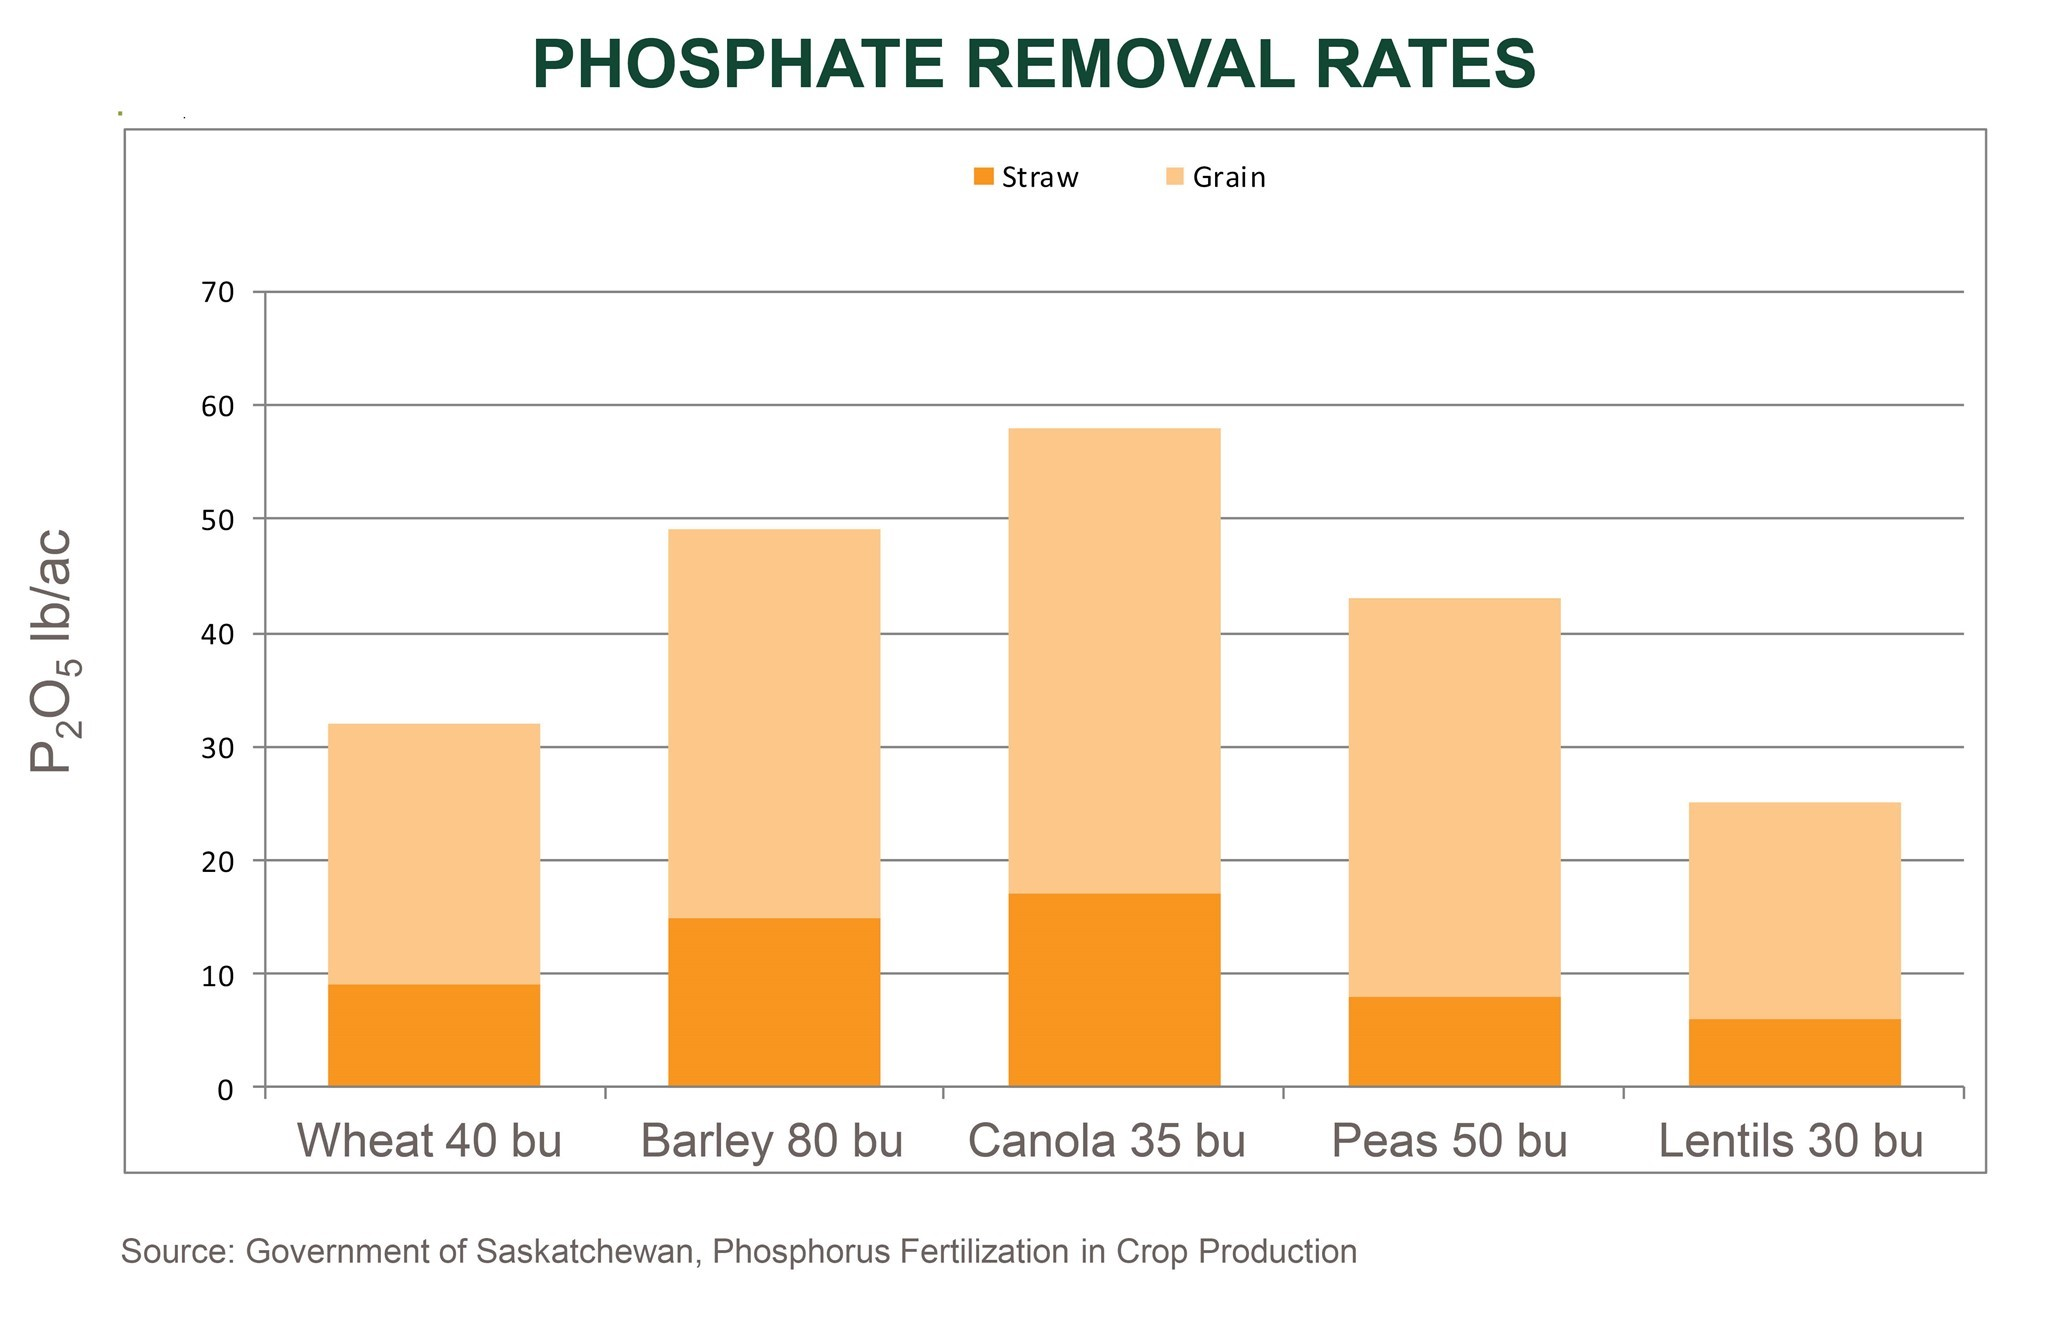 /_uploads/images/contenthub-posts/02-2021/phosphate_removal_rates_fix.jpg